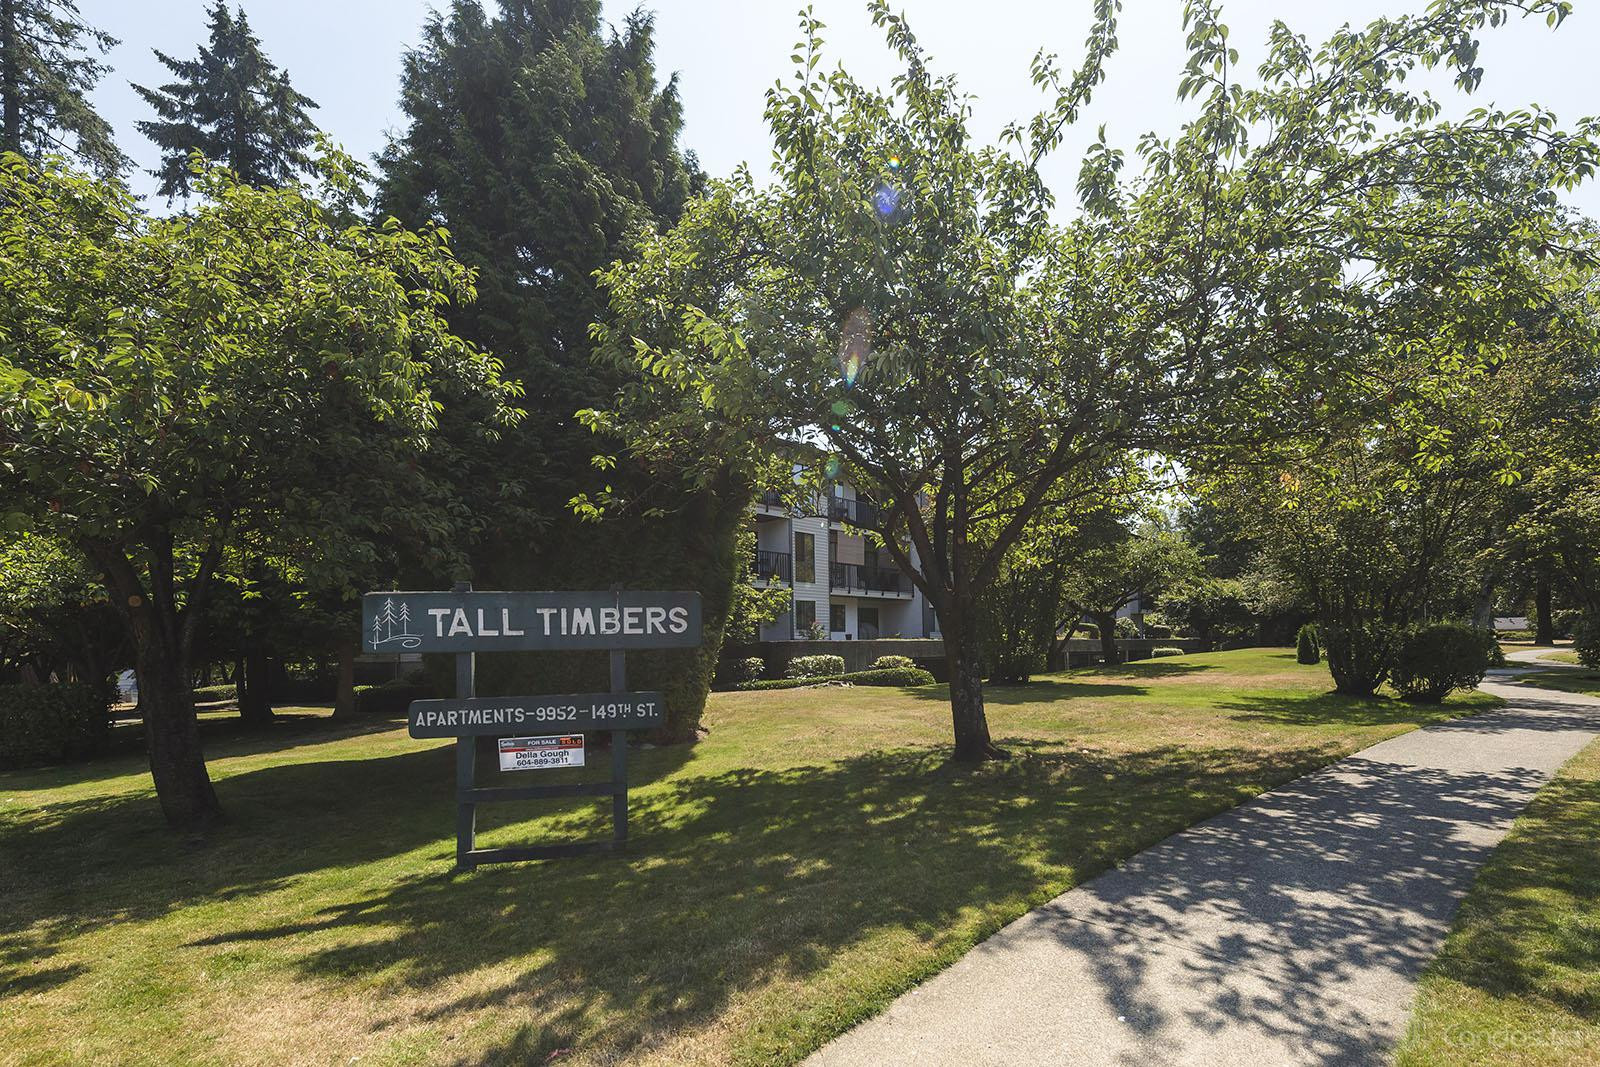 Tall Timbers at 9952 149 St, Surrey 0